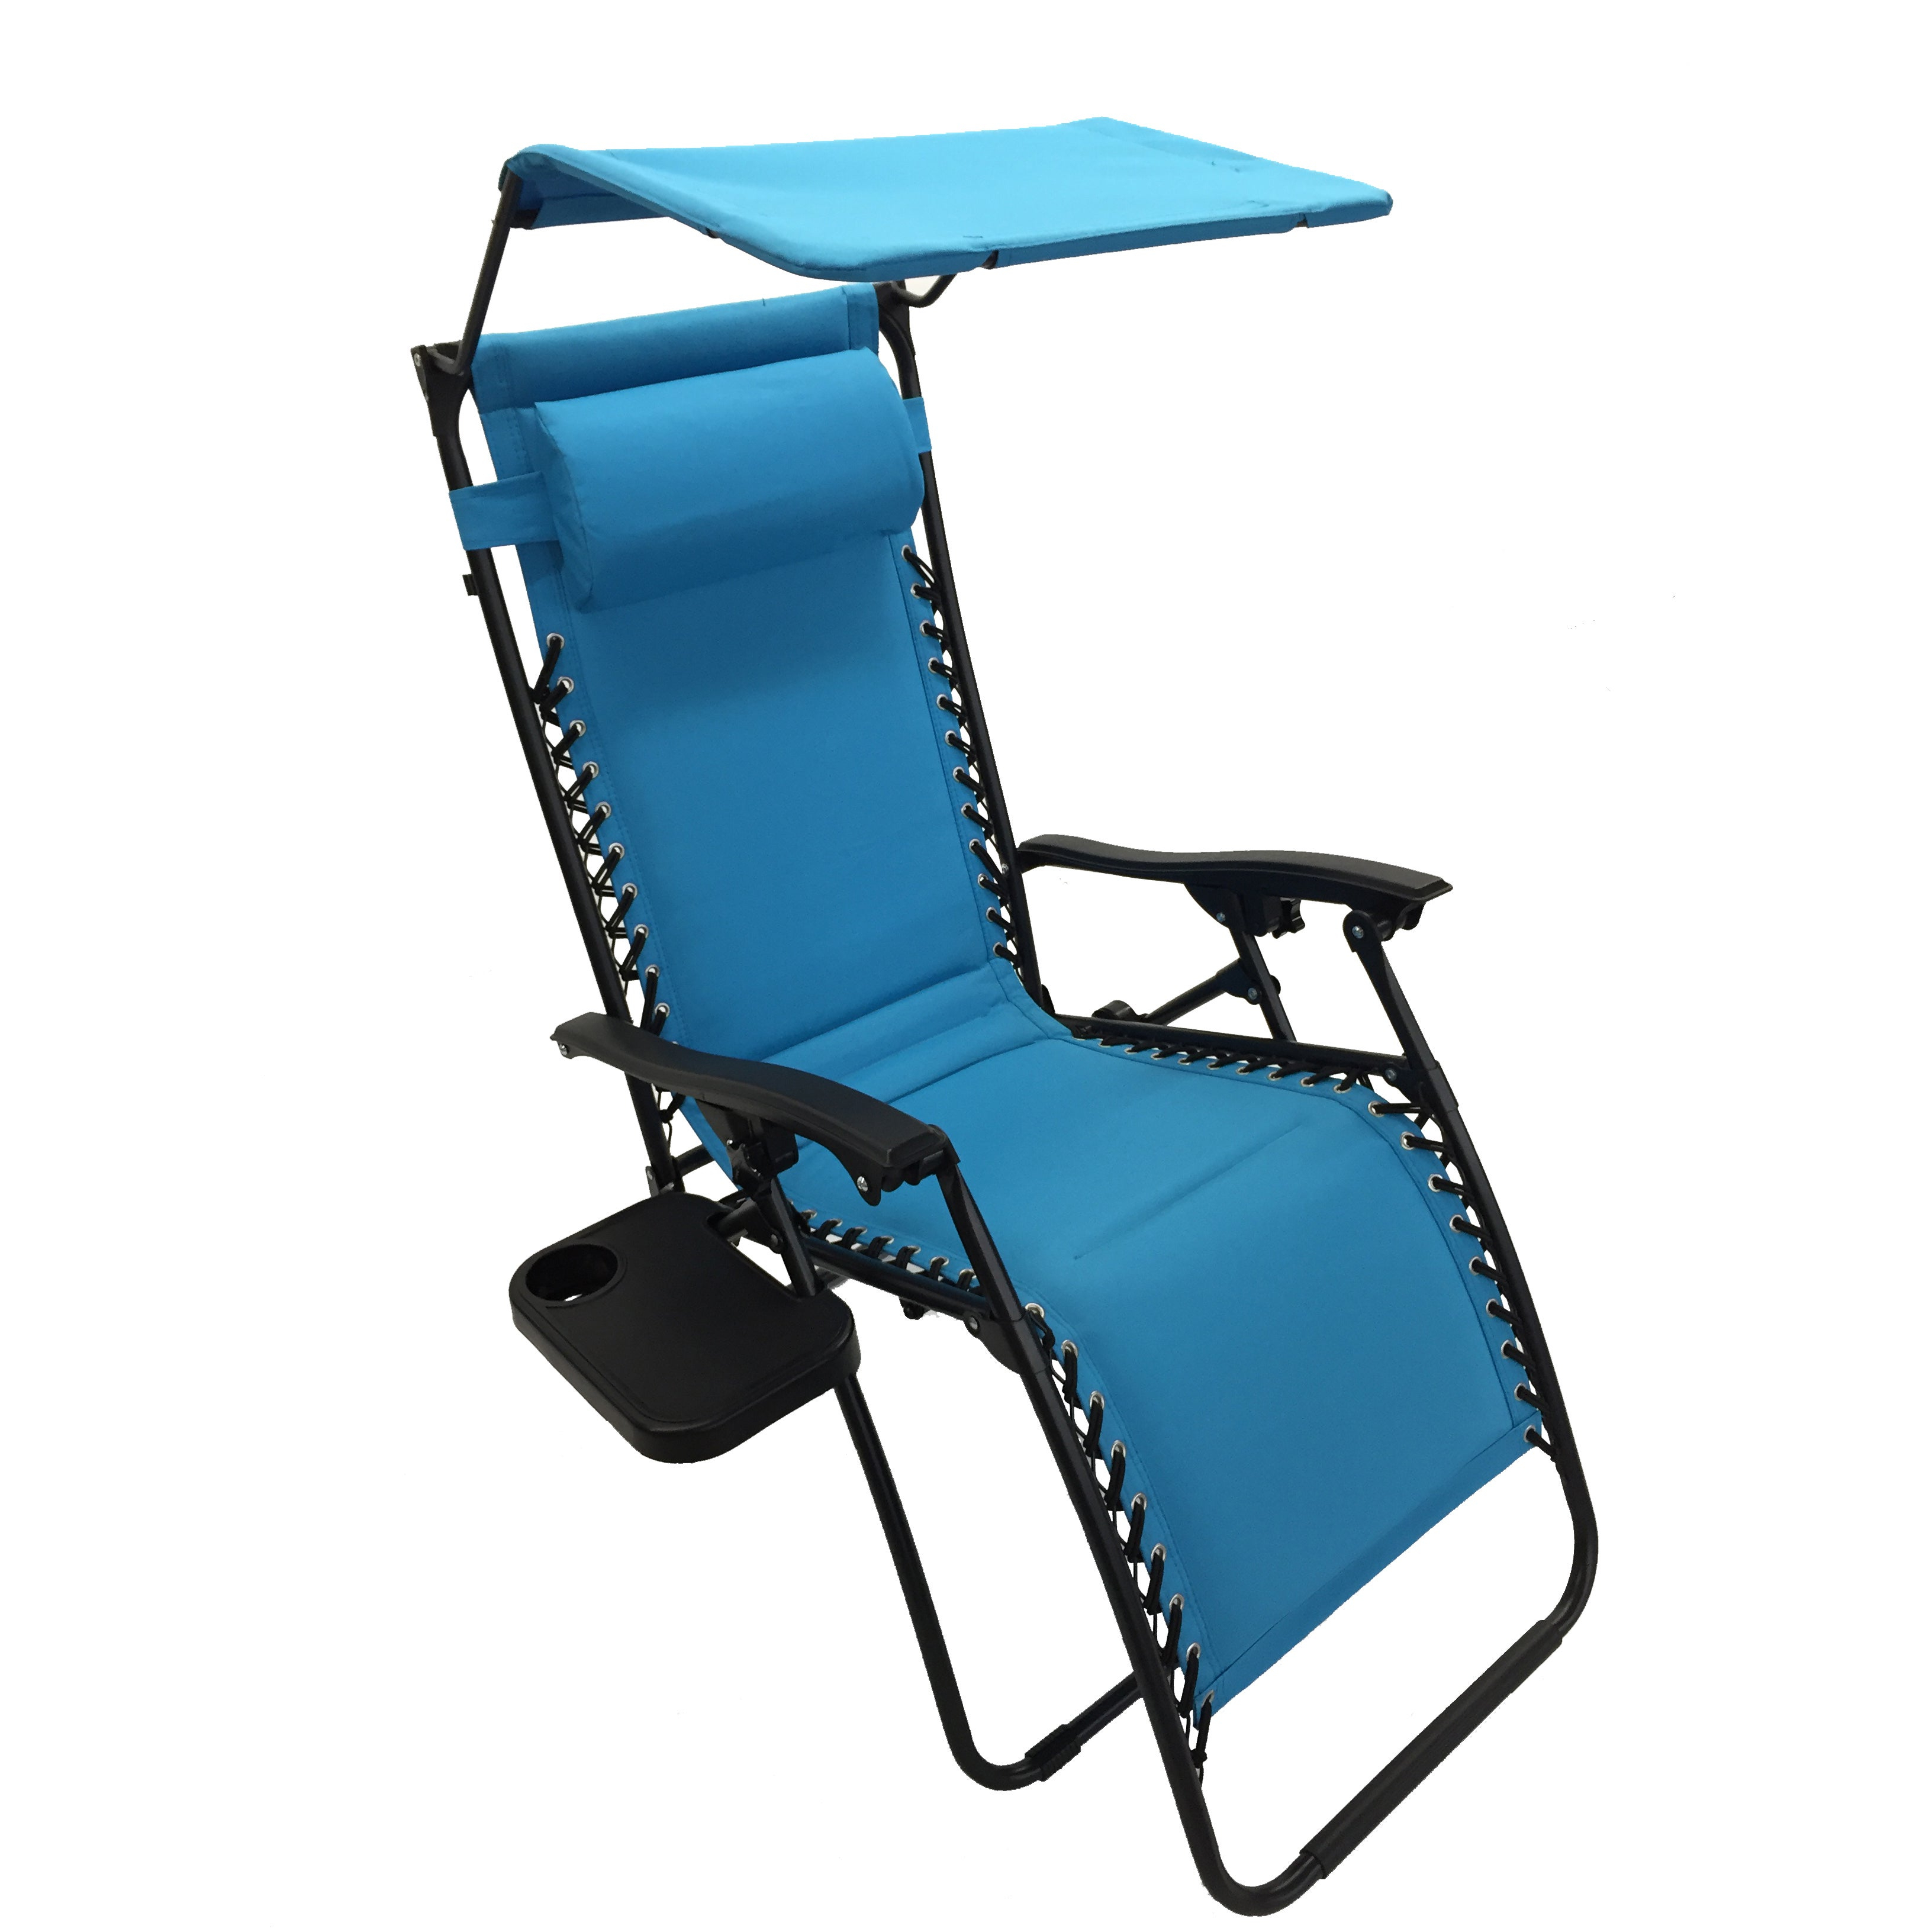 Deluxe Padded Chairs With Canopy And Tray Pertaining To Preferred Styled Shopping Deluxe Padded Zero Gravity Chair With Canopy And Tray (View 7 of 25)